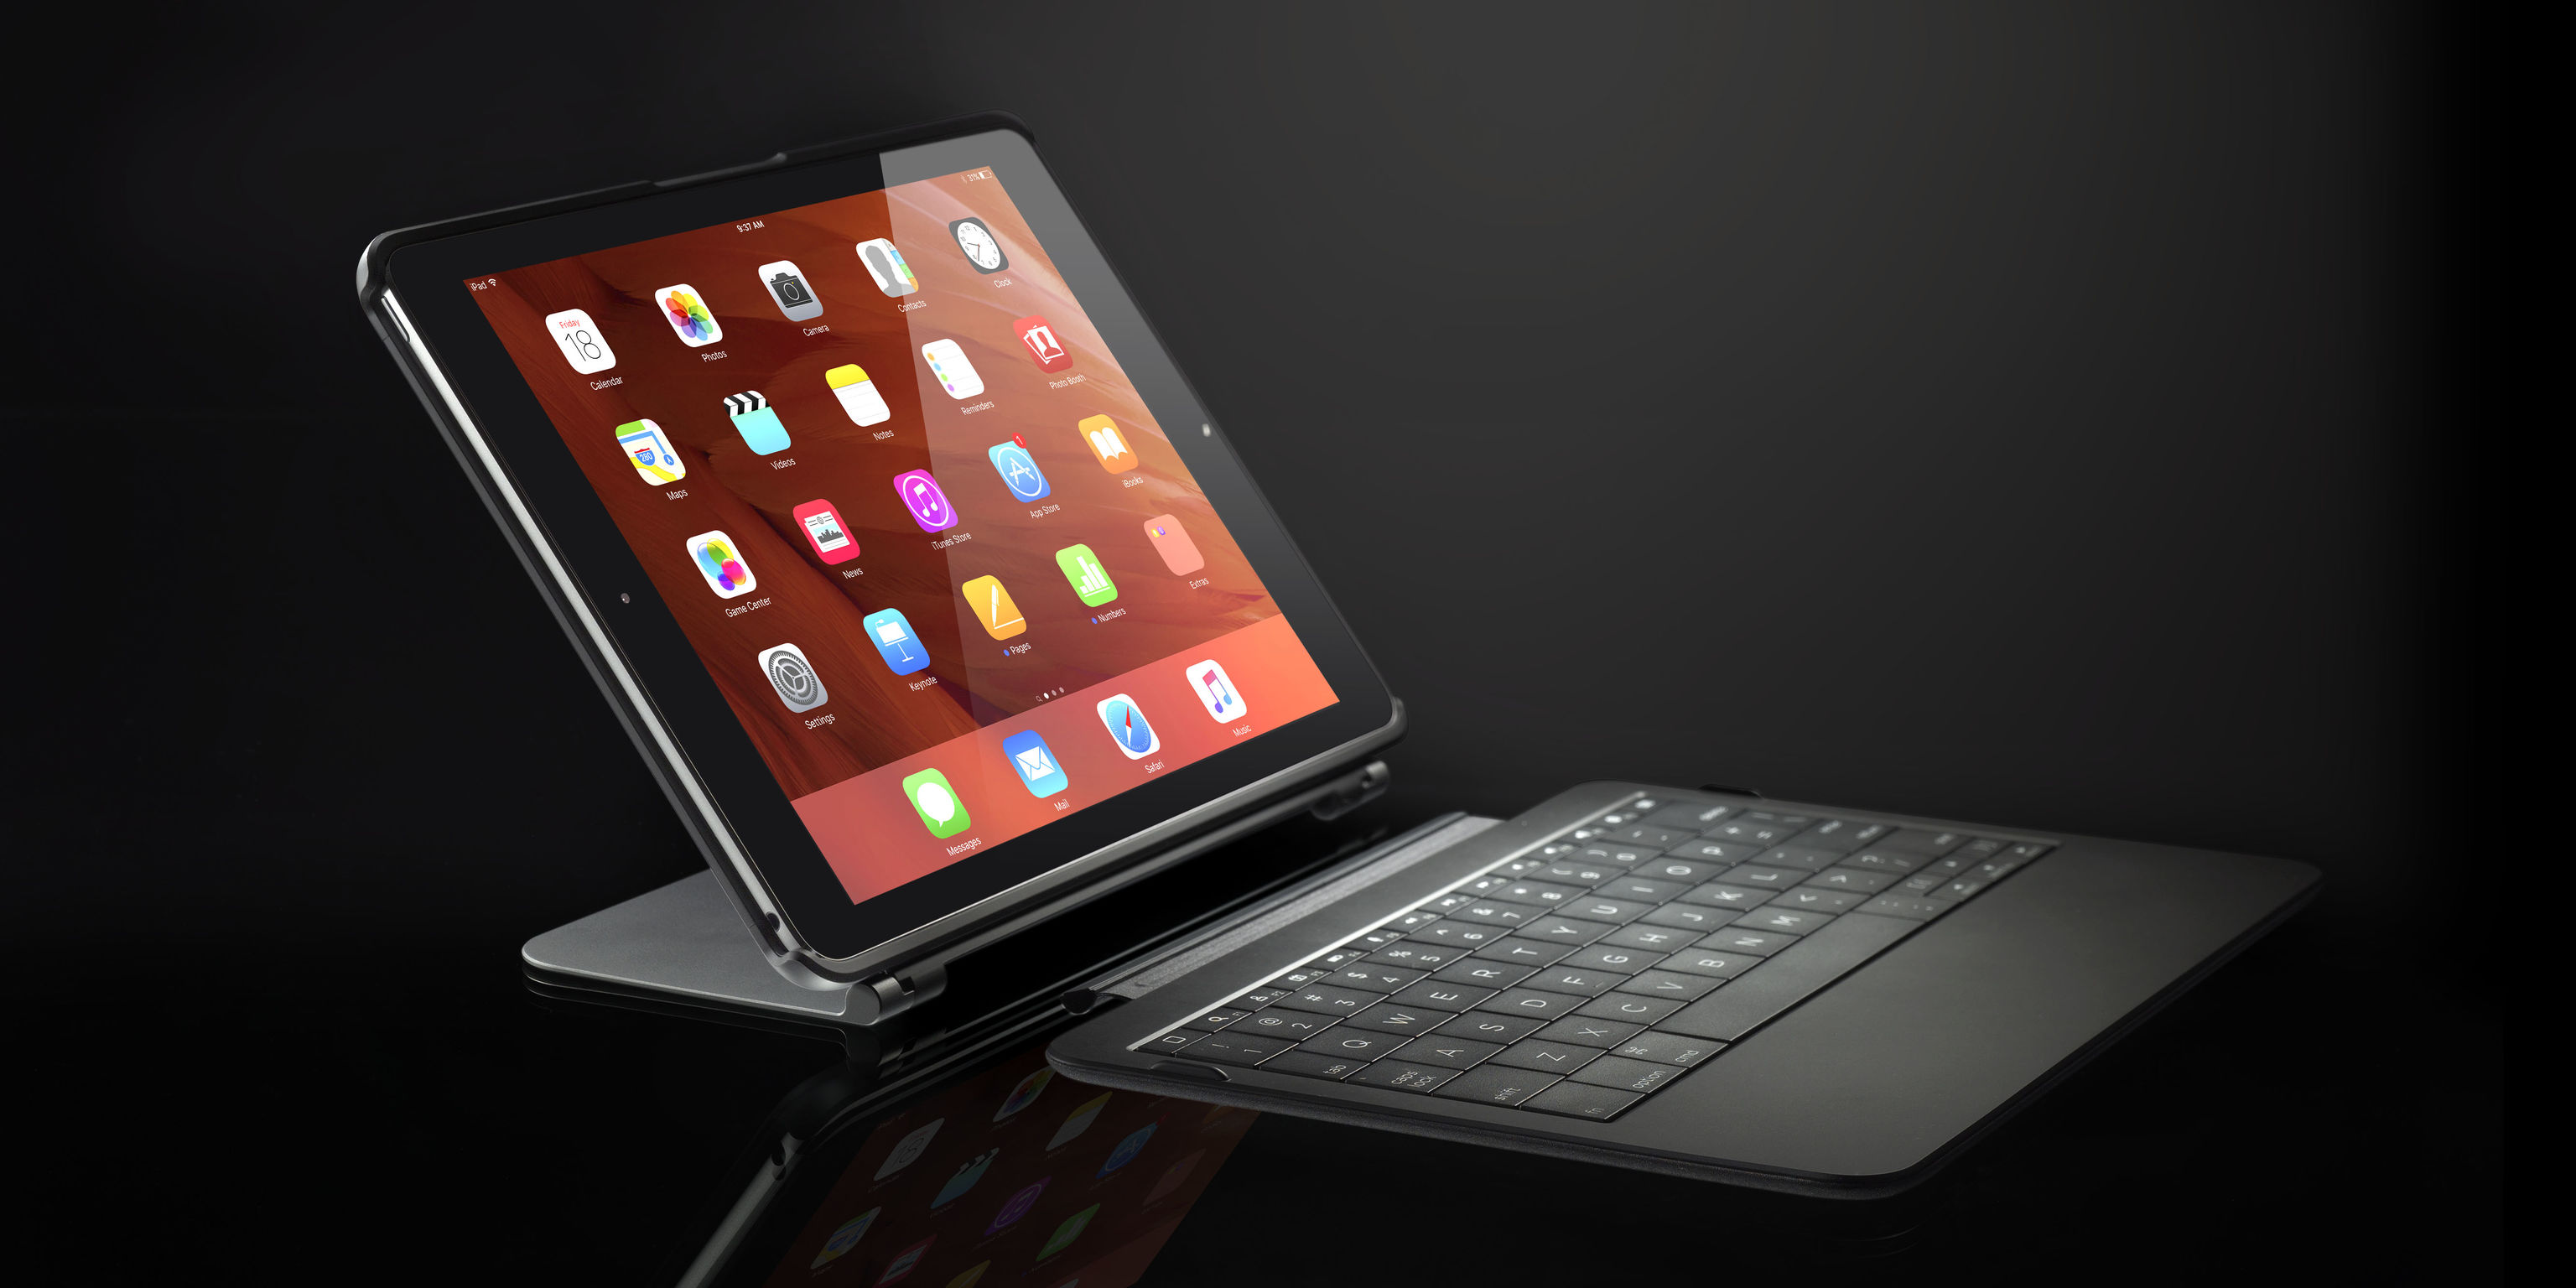 buy popular 303f4 55743 TYPO keyboard for iPad Air   iF WORLD DESIGN GUIDE